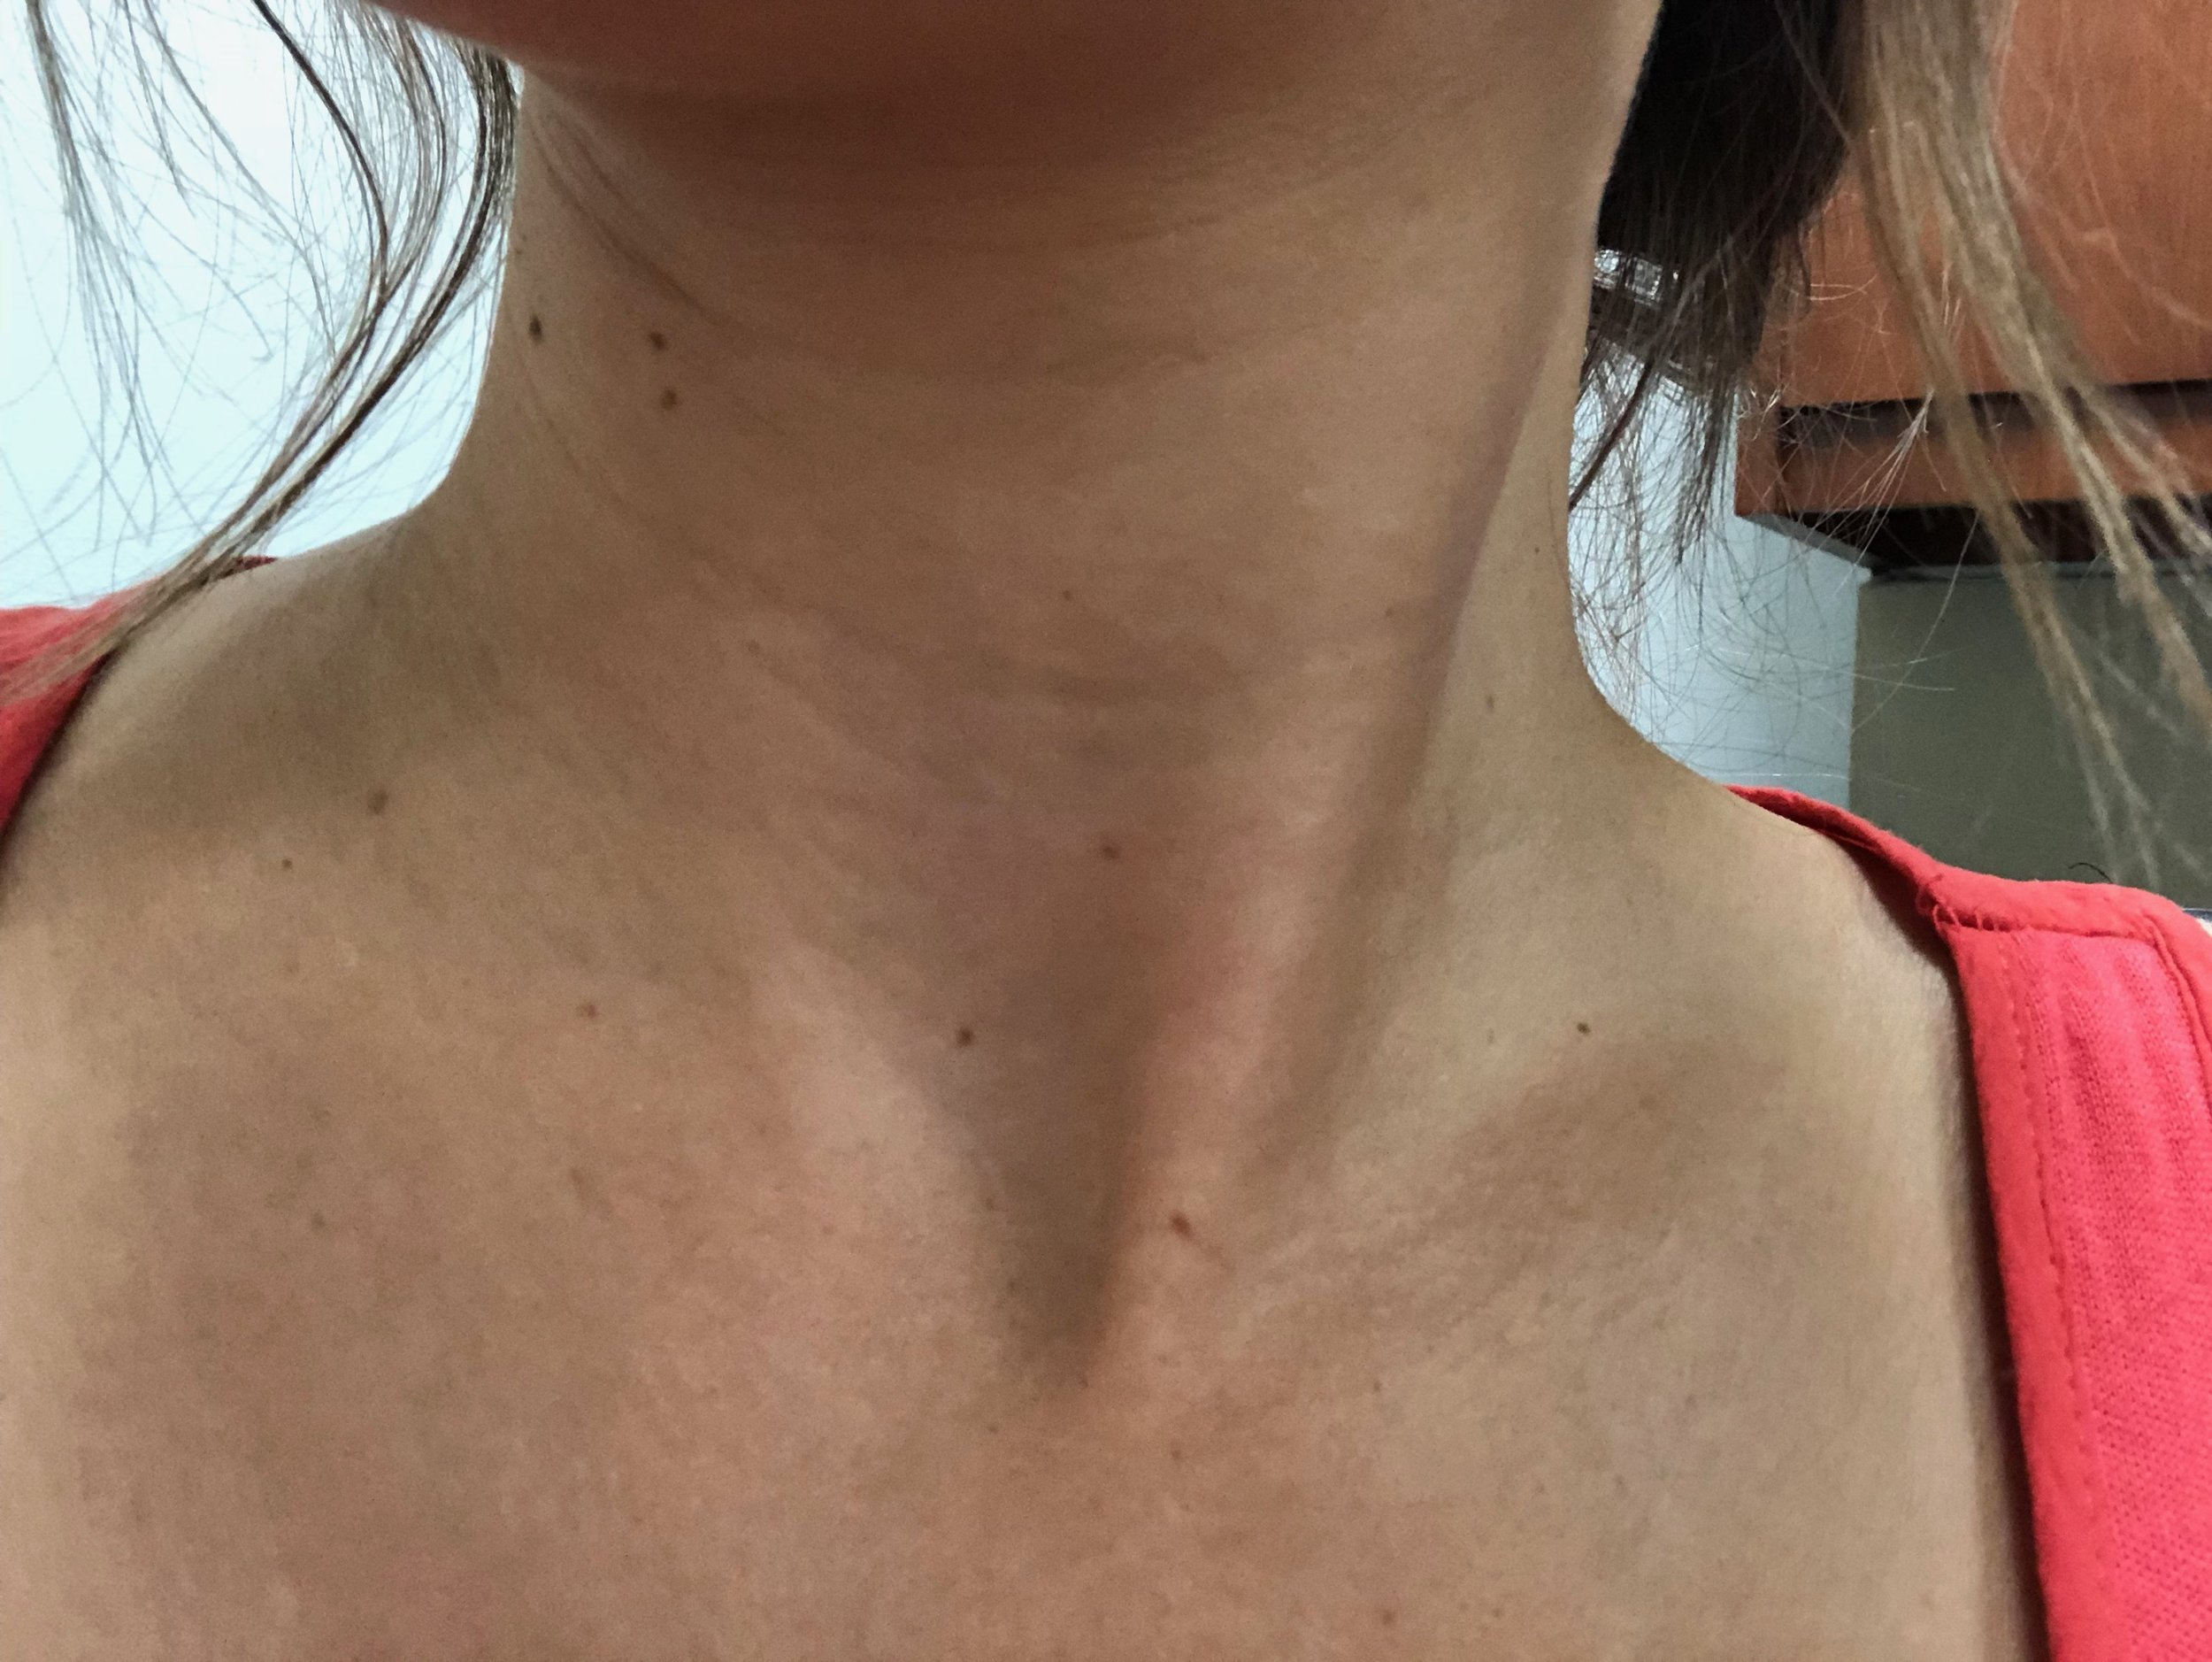 Katherine K: Week 1 - Week 1 was interesting, the mask is pretty cool. I LOVE that is is clear, so I don't look weird when going around with it on! It did take at least 30-35 min to dry. But when it did- it came off in one piece! I feel like my neck is softer already so we will see what happens.